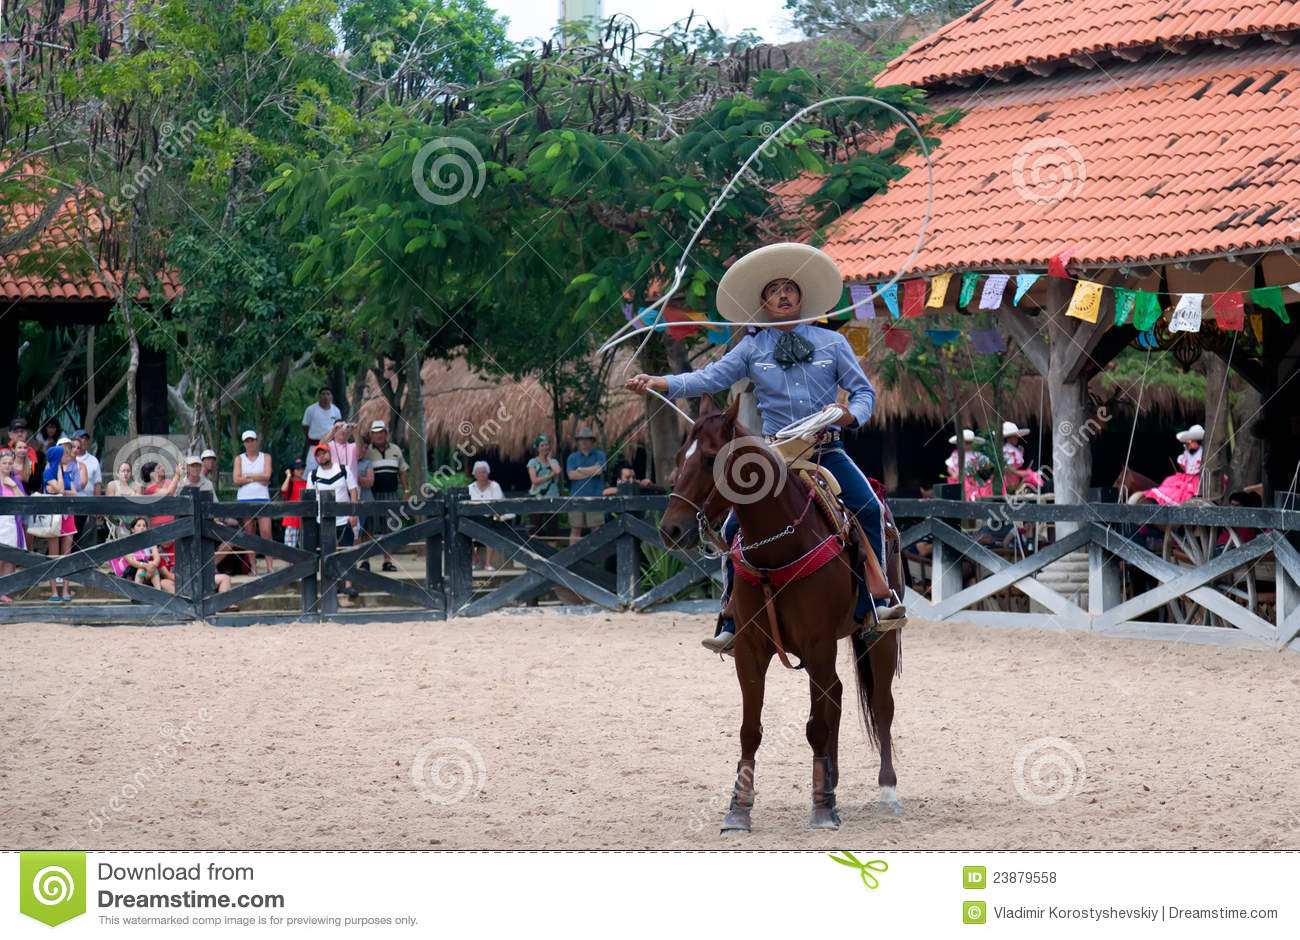 Xcaret Rodeo Show Performer Editorial Stock Photo - Image: 23879558